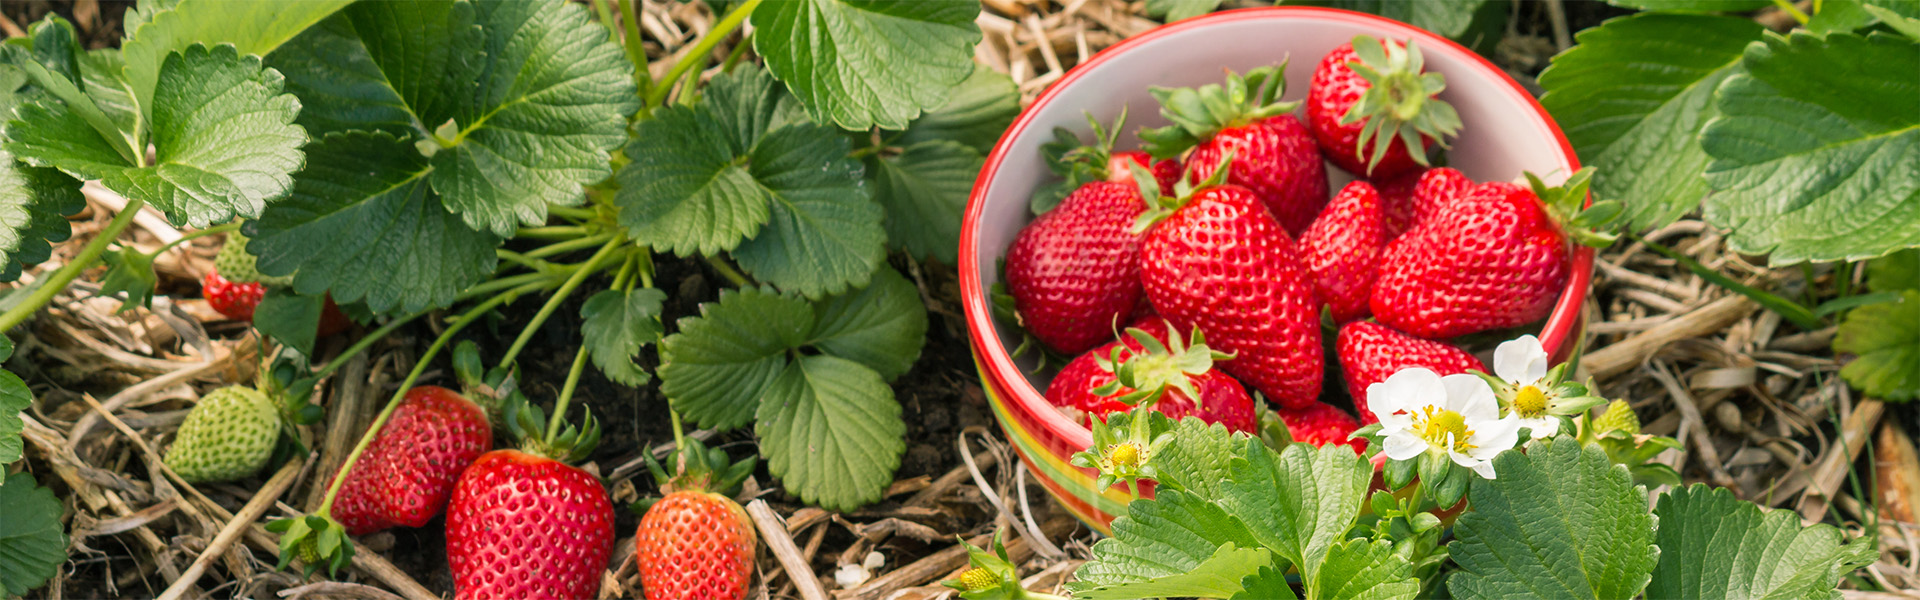 """<p data-aos=fade-up style=""""text-align:center""""><strong>Sweet strawberries</strong></p>"""